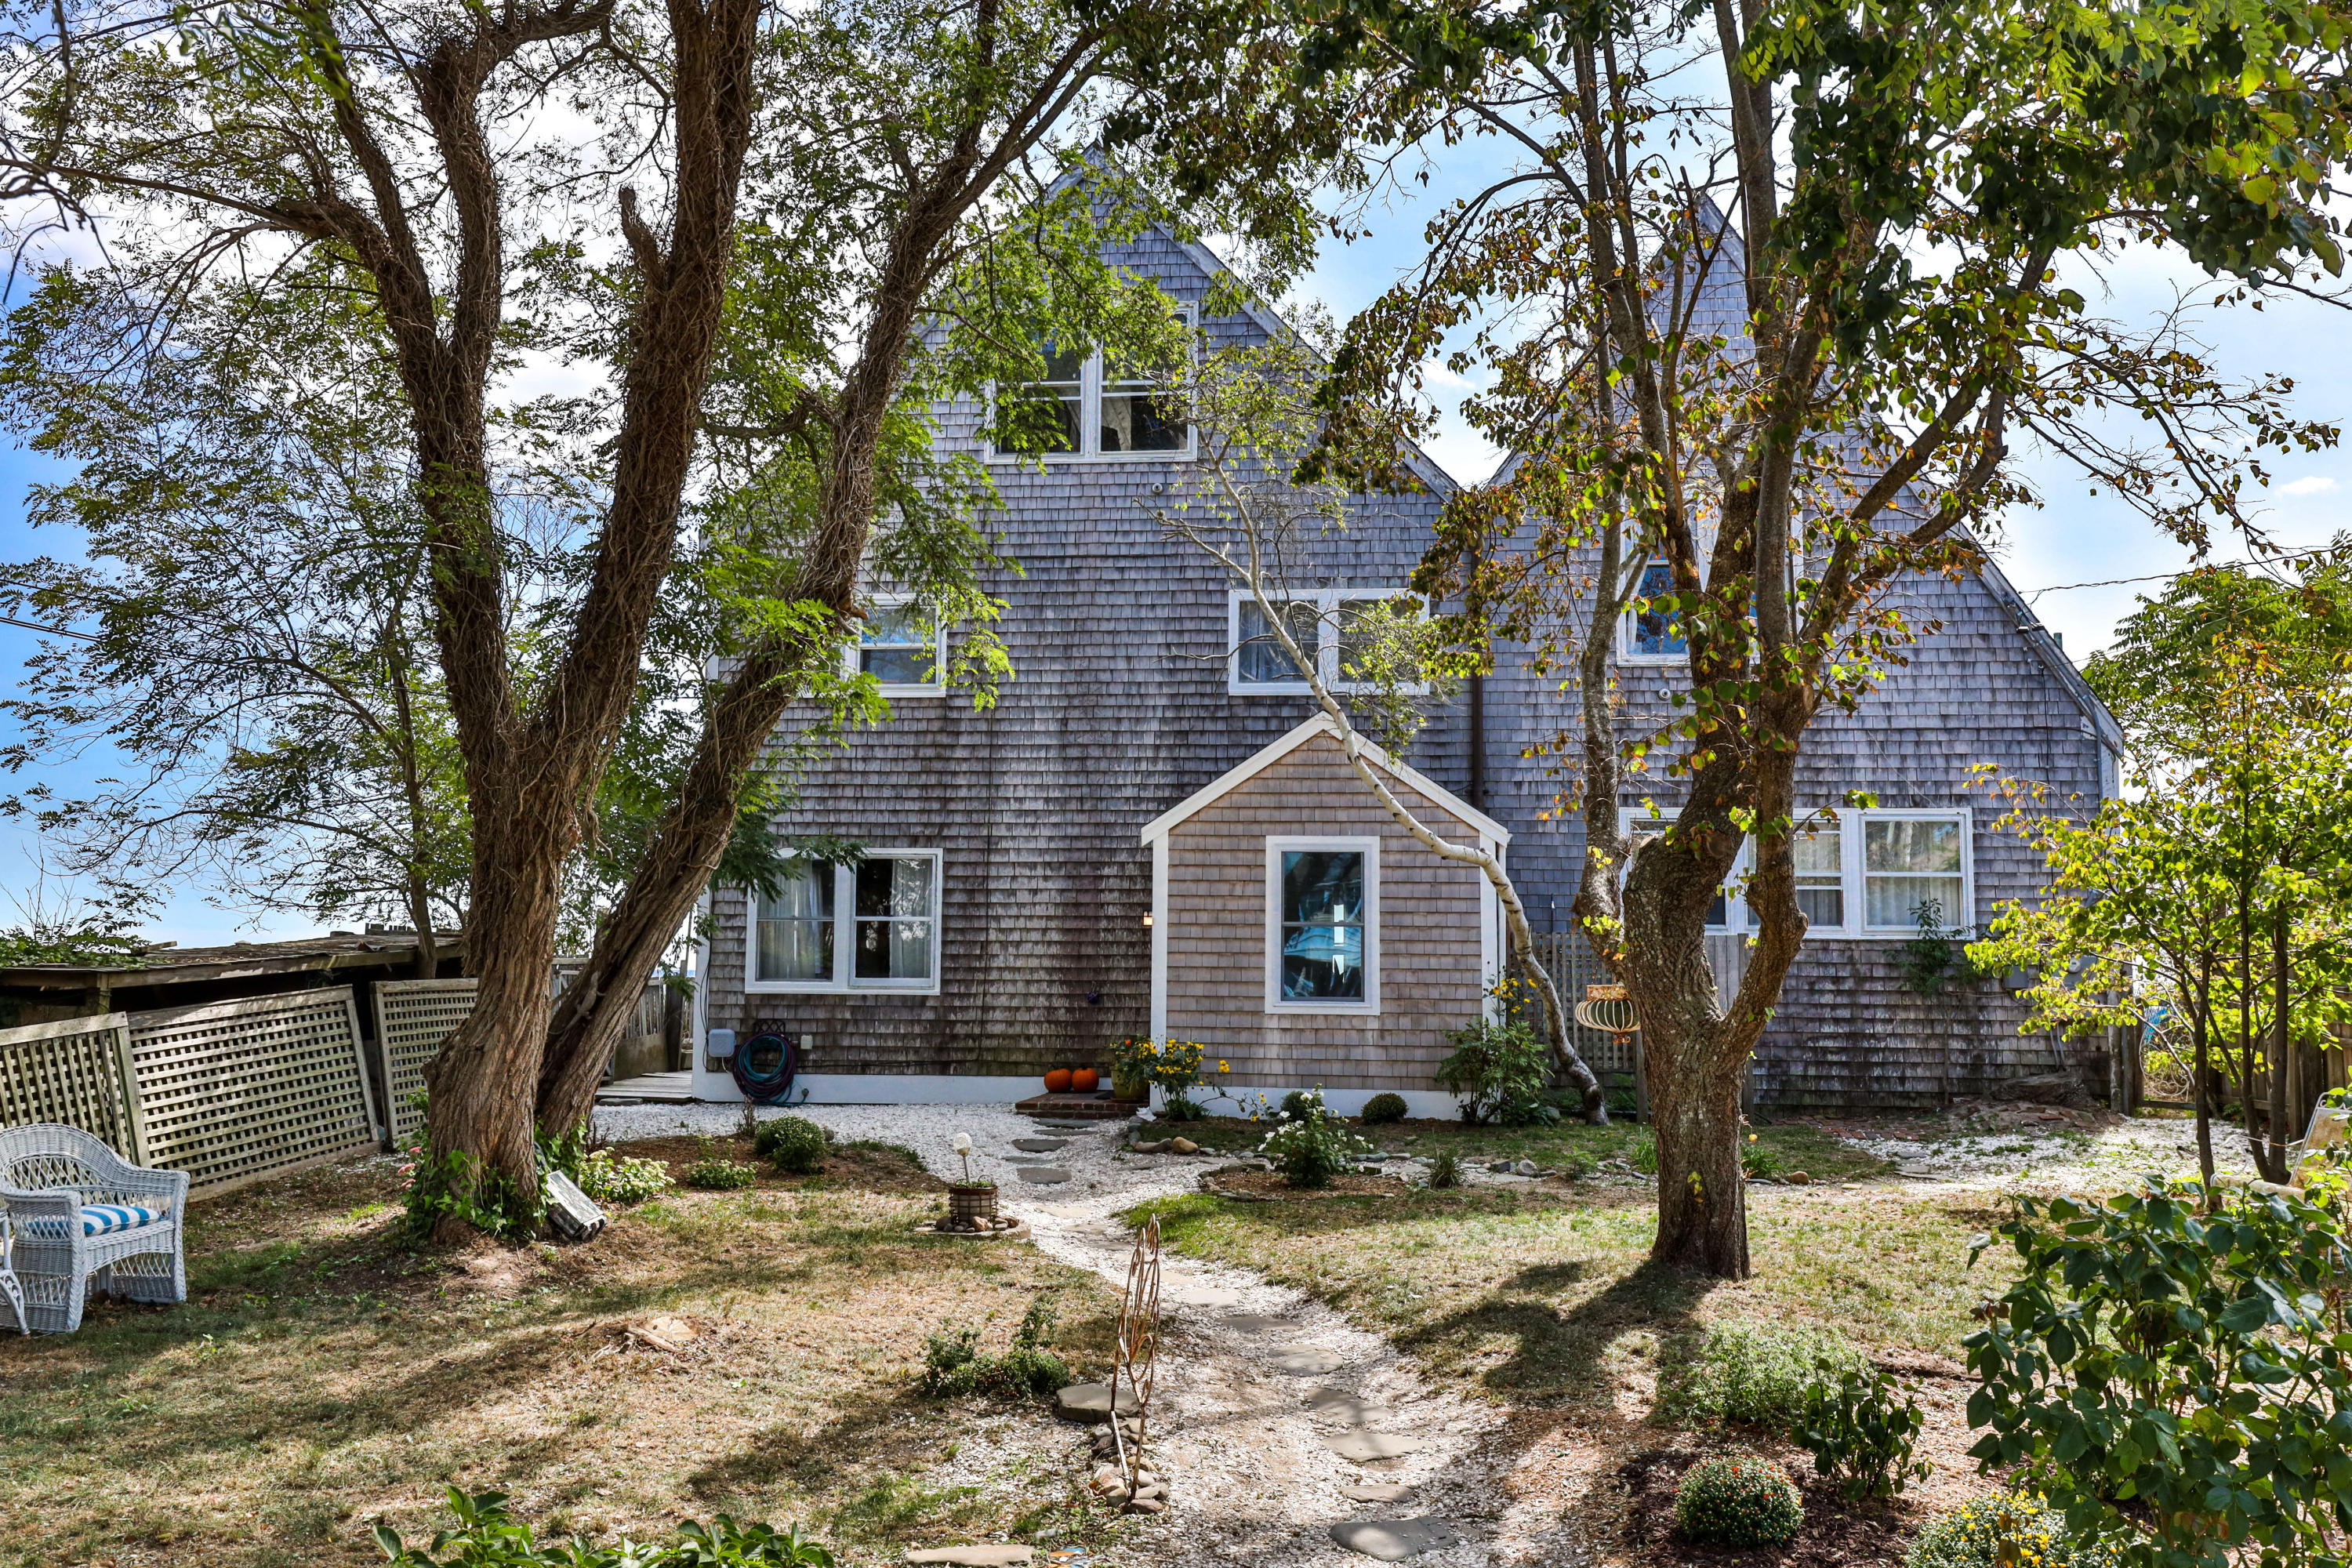 505 Commercial Street, Provincetown MA, 02657 details